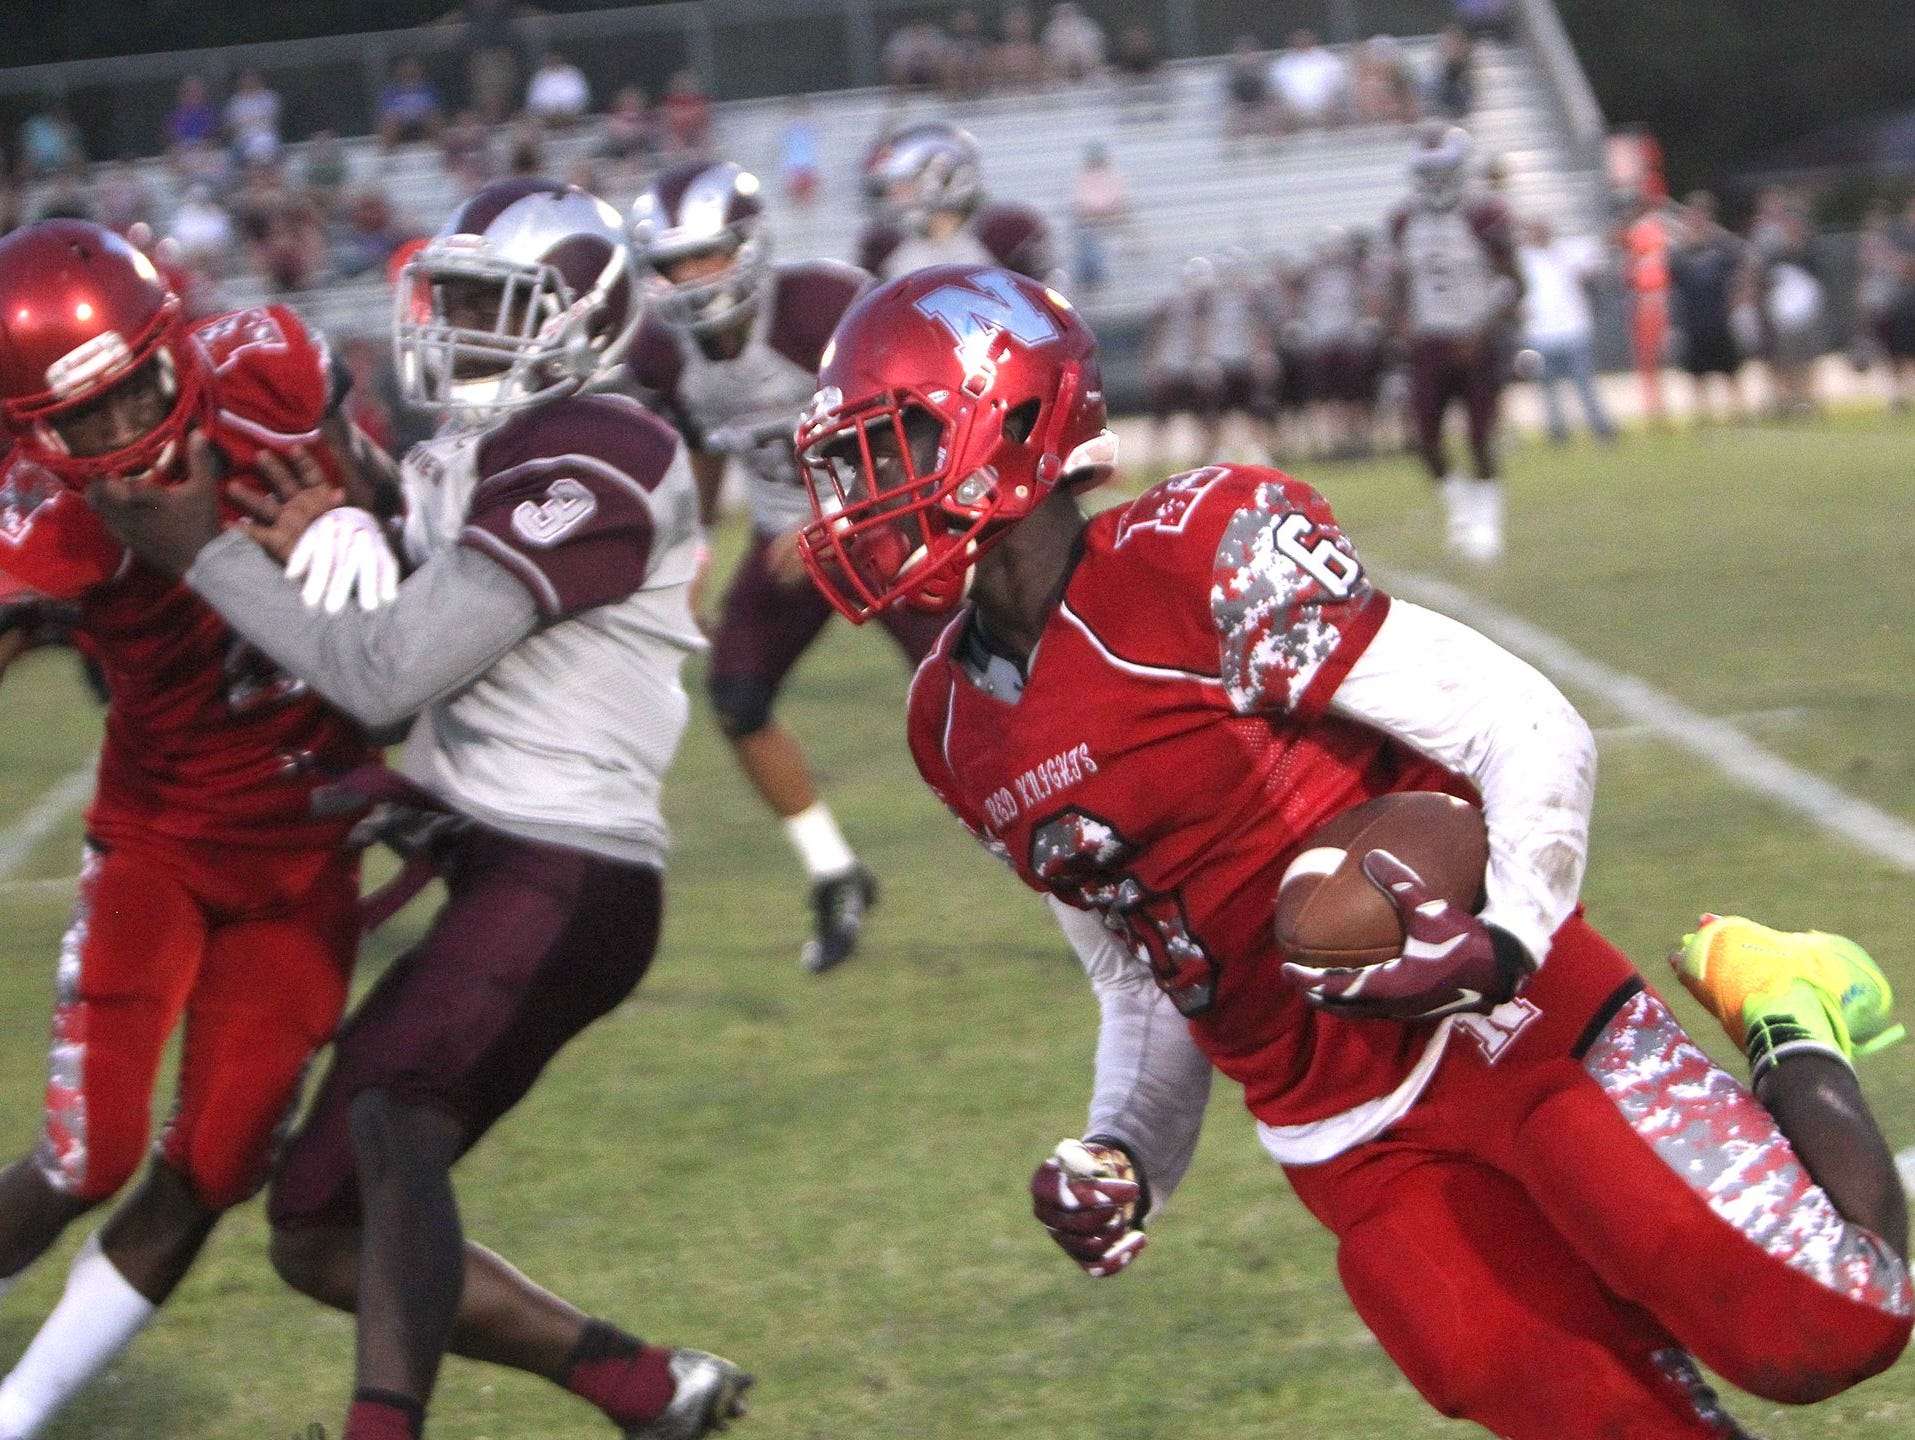 North Fort Myers High and Florida State commit Zaquandre While will look to lead the Red Knights to a playoff spot in 2016.